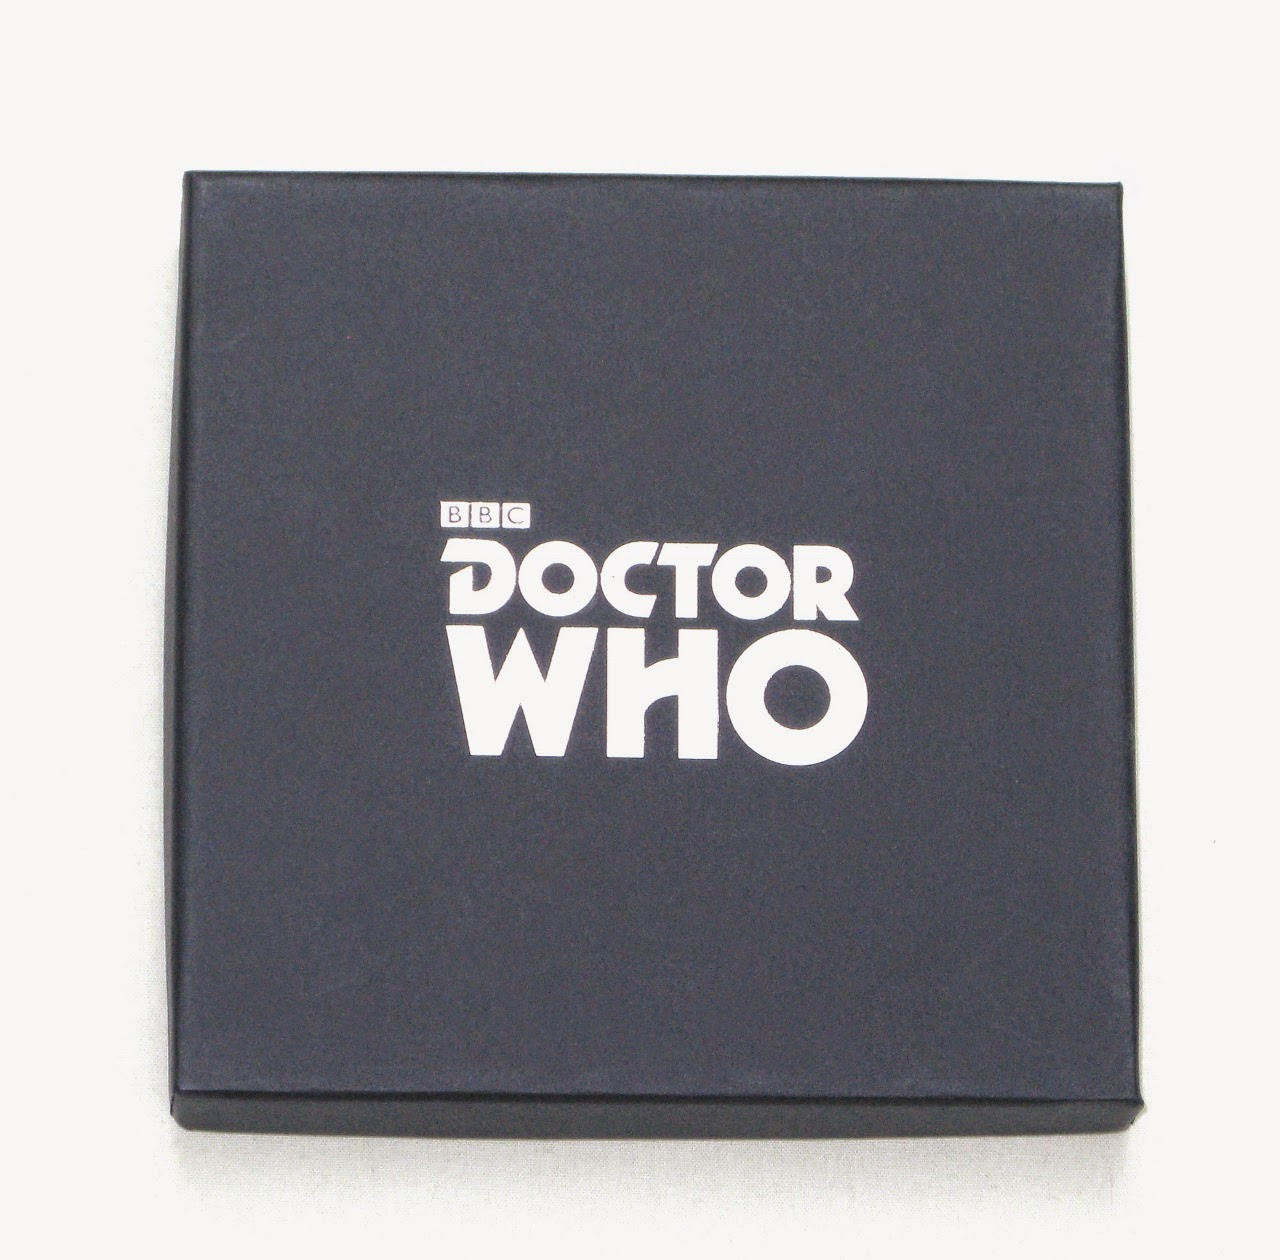 http://track.webgains.com/click.html?wgcampaignid=135799&wgprogramid=6721&wgtarget=http://www.lovarzi.co.uk/TARDIS-Scarf-Official-Doctor-LOVARZI/dp/B00P1S5UFG